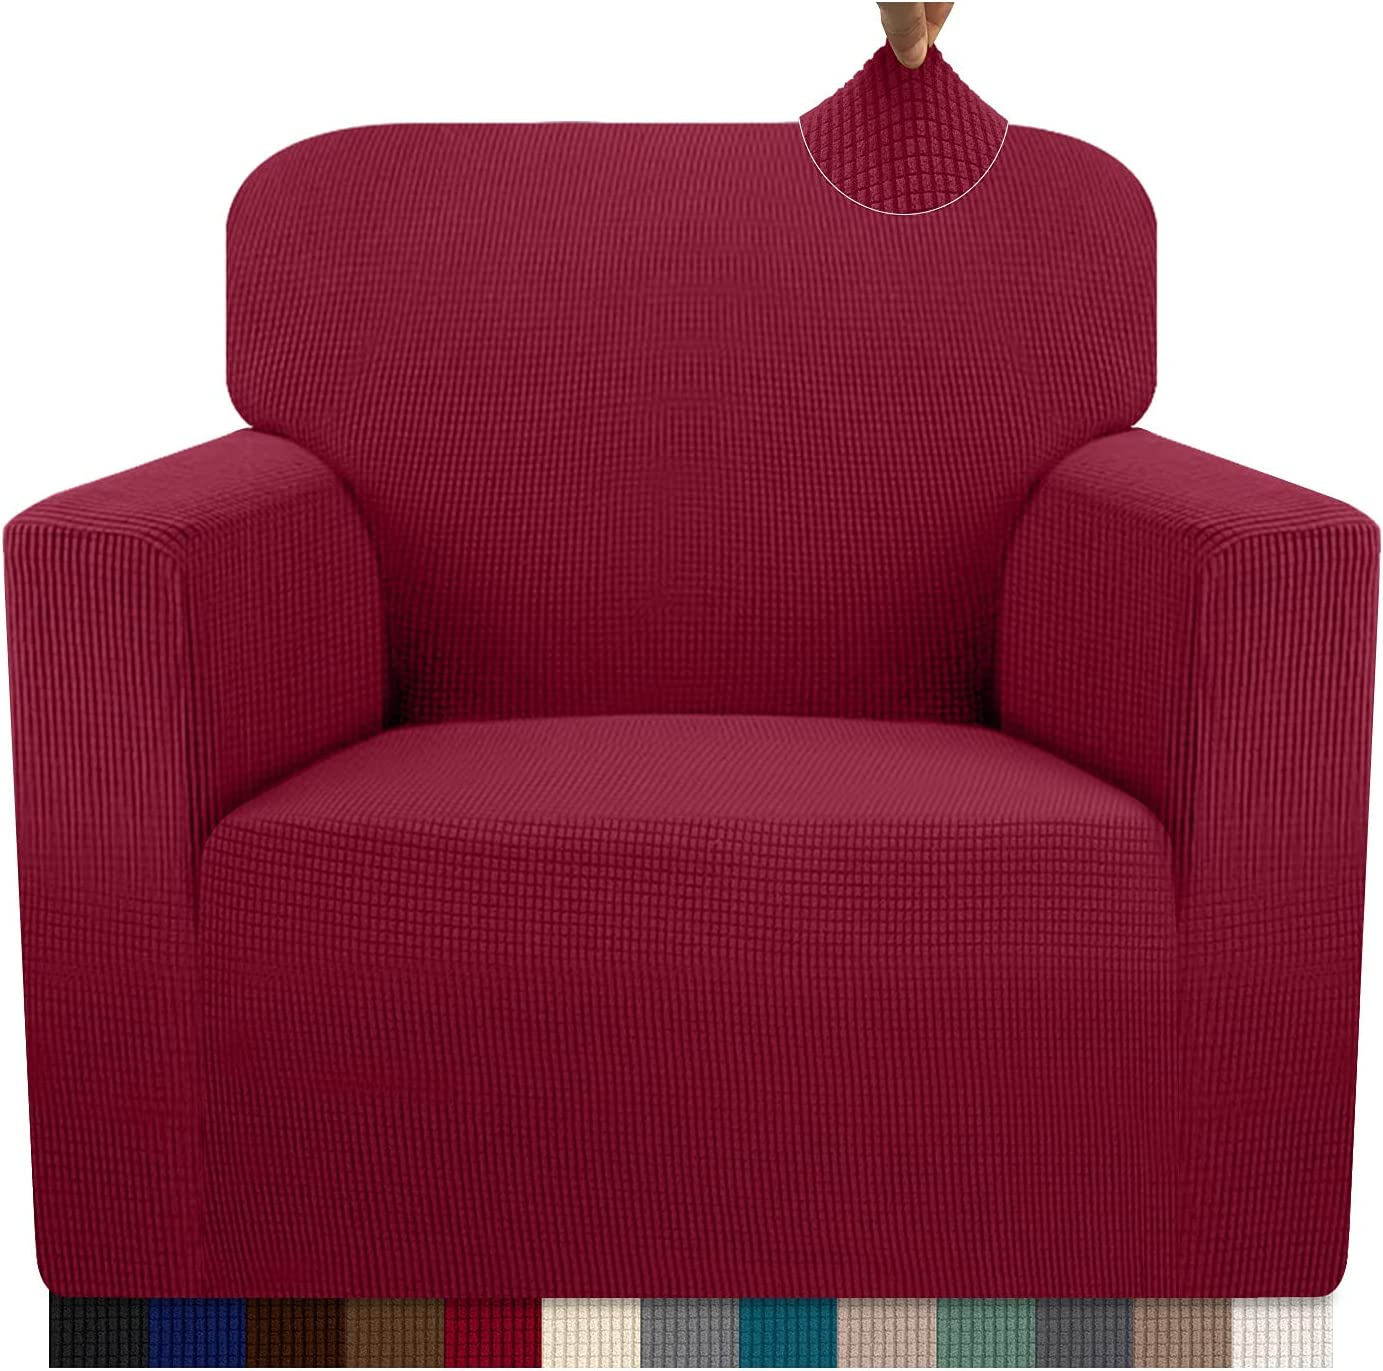 Empetric Super Soft Armchair Slipover Luxurious Factory outlet Co 70% OFF Outlet Piece Chair 1